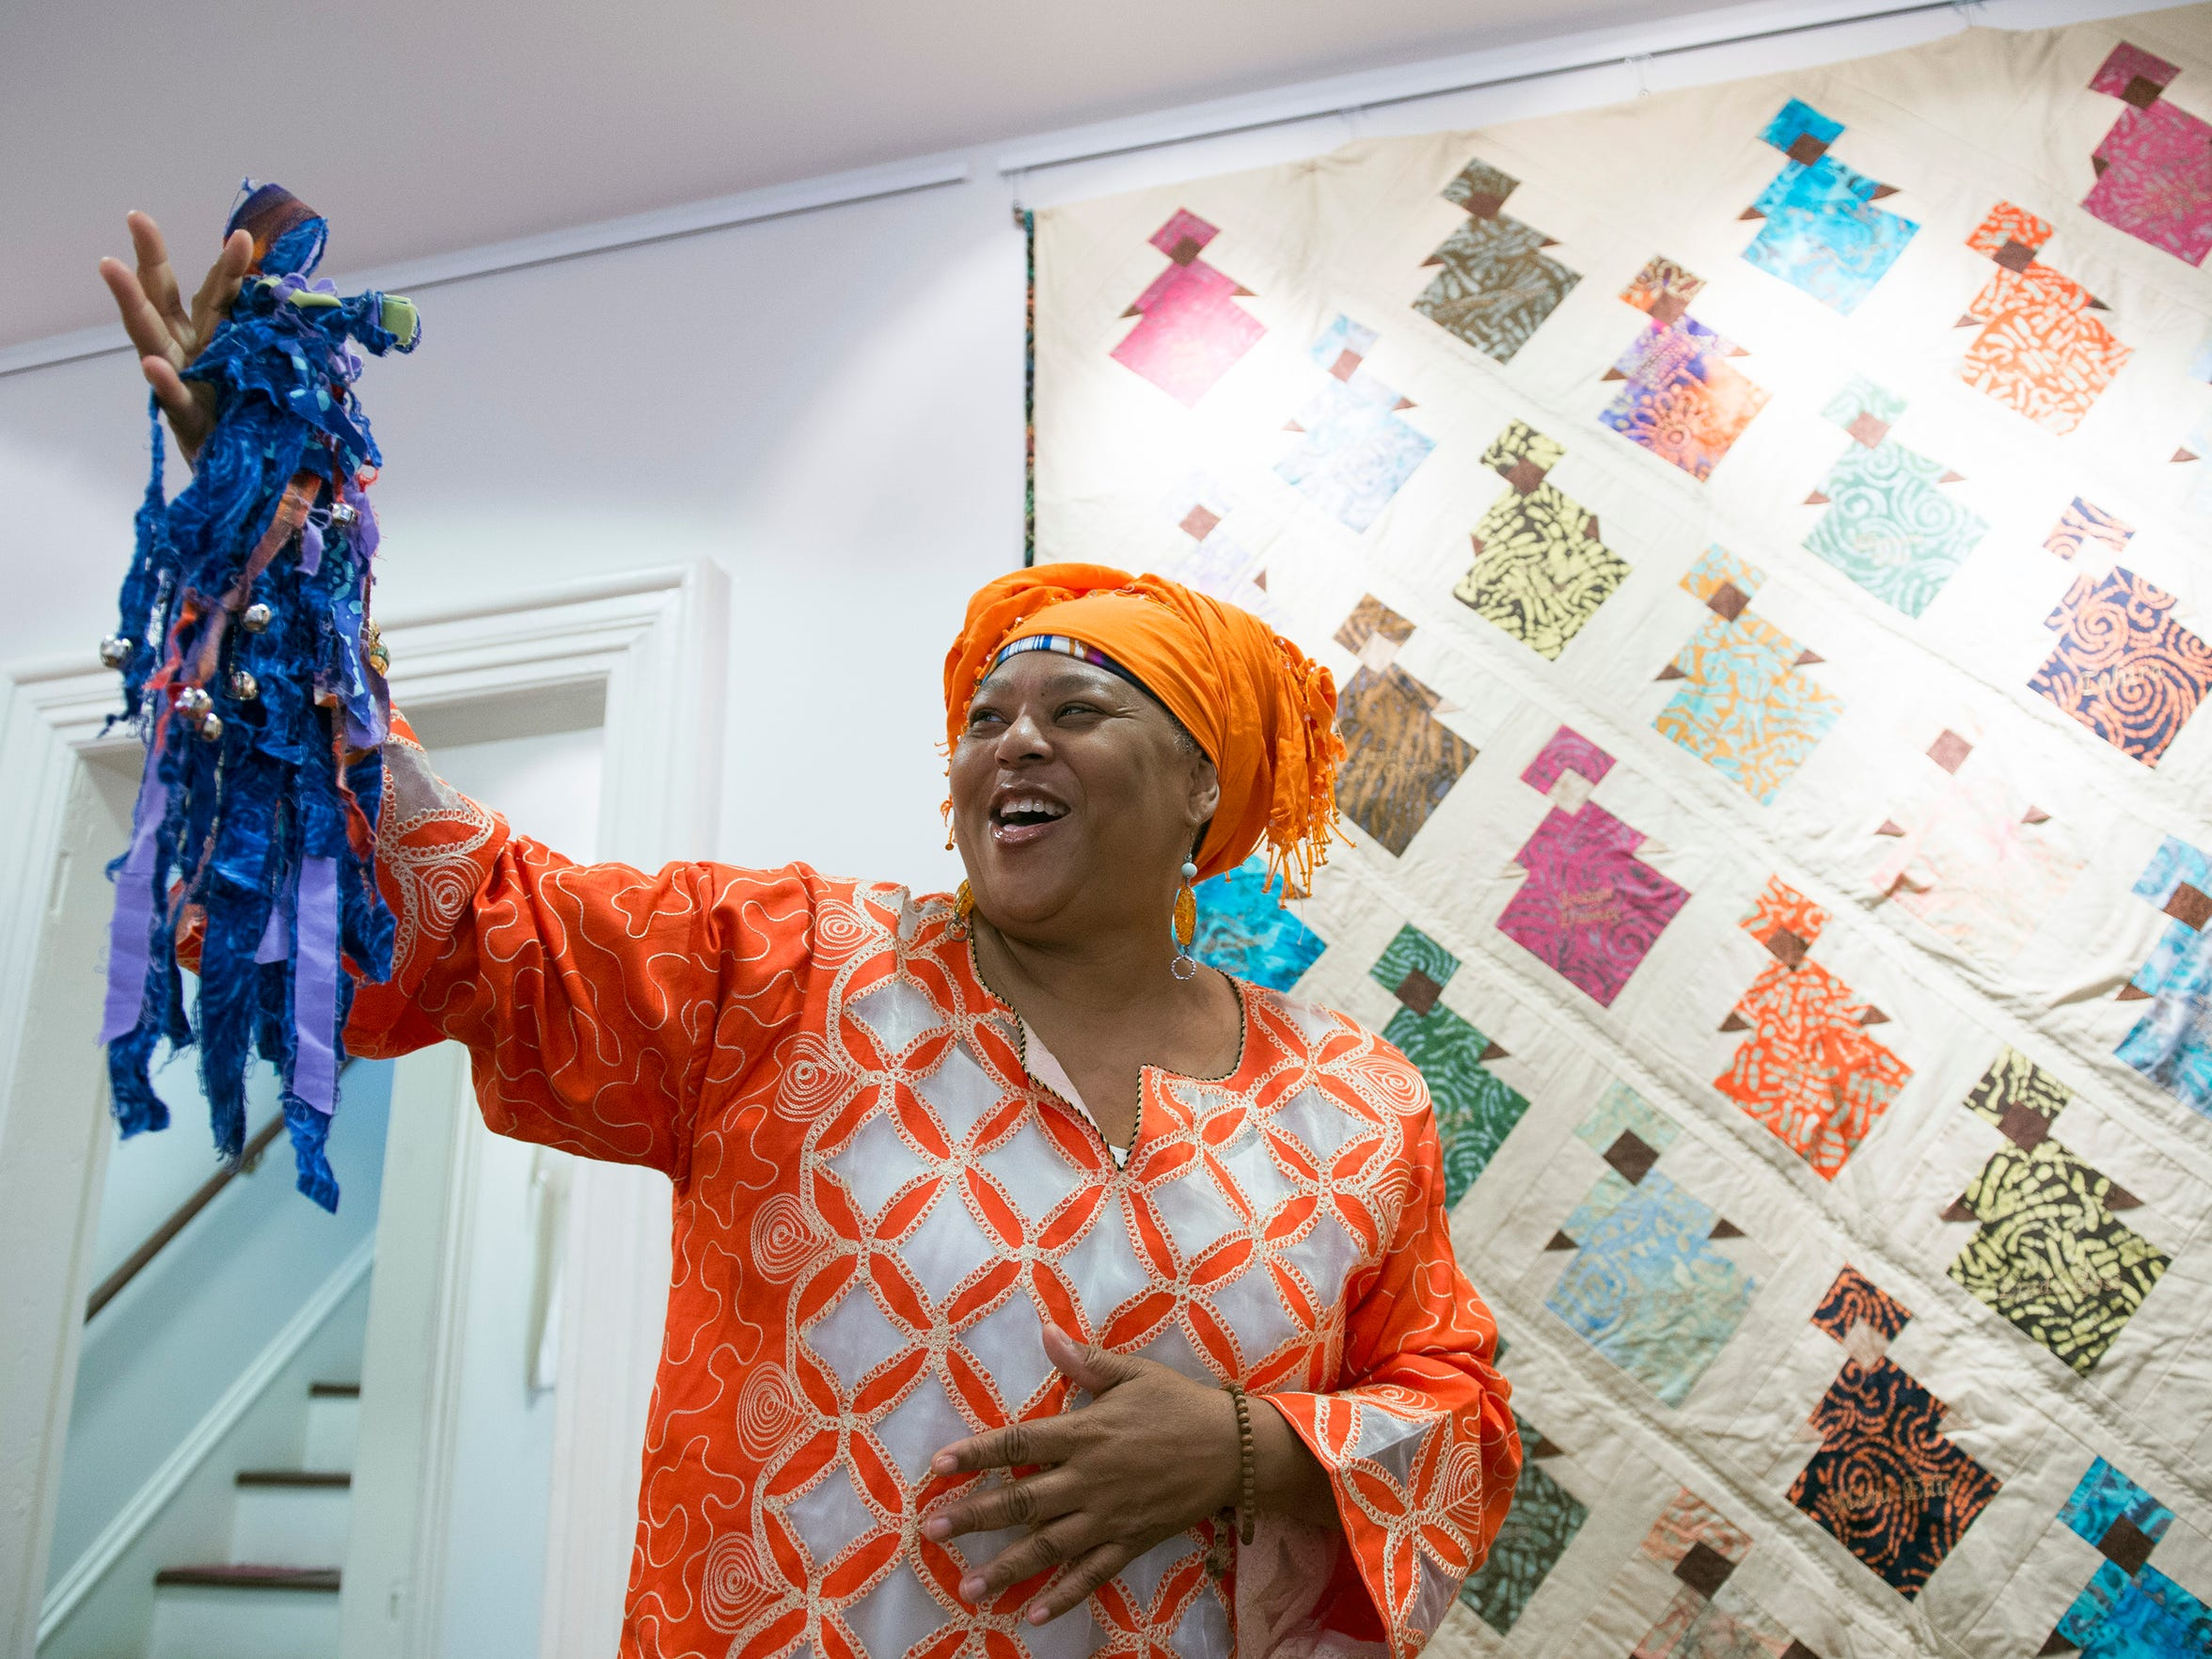 Karen 'Queen Nur' Abdul-Malik displays one of the dolls inside the Dolls of Distinction Exhibition at the Smithville Mansion in Eastampton recently. Queen Nur is a storyteller and teaching artist, who resides in Willingboro. She is also the director of the Folklife Center at Perkins Center for the Arts.